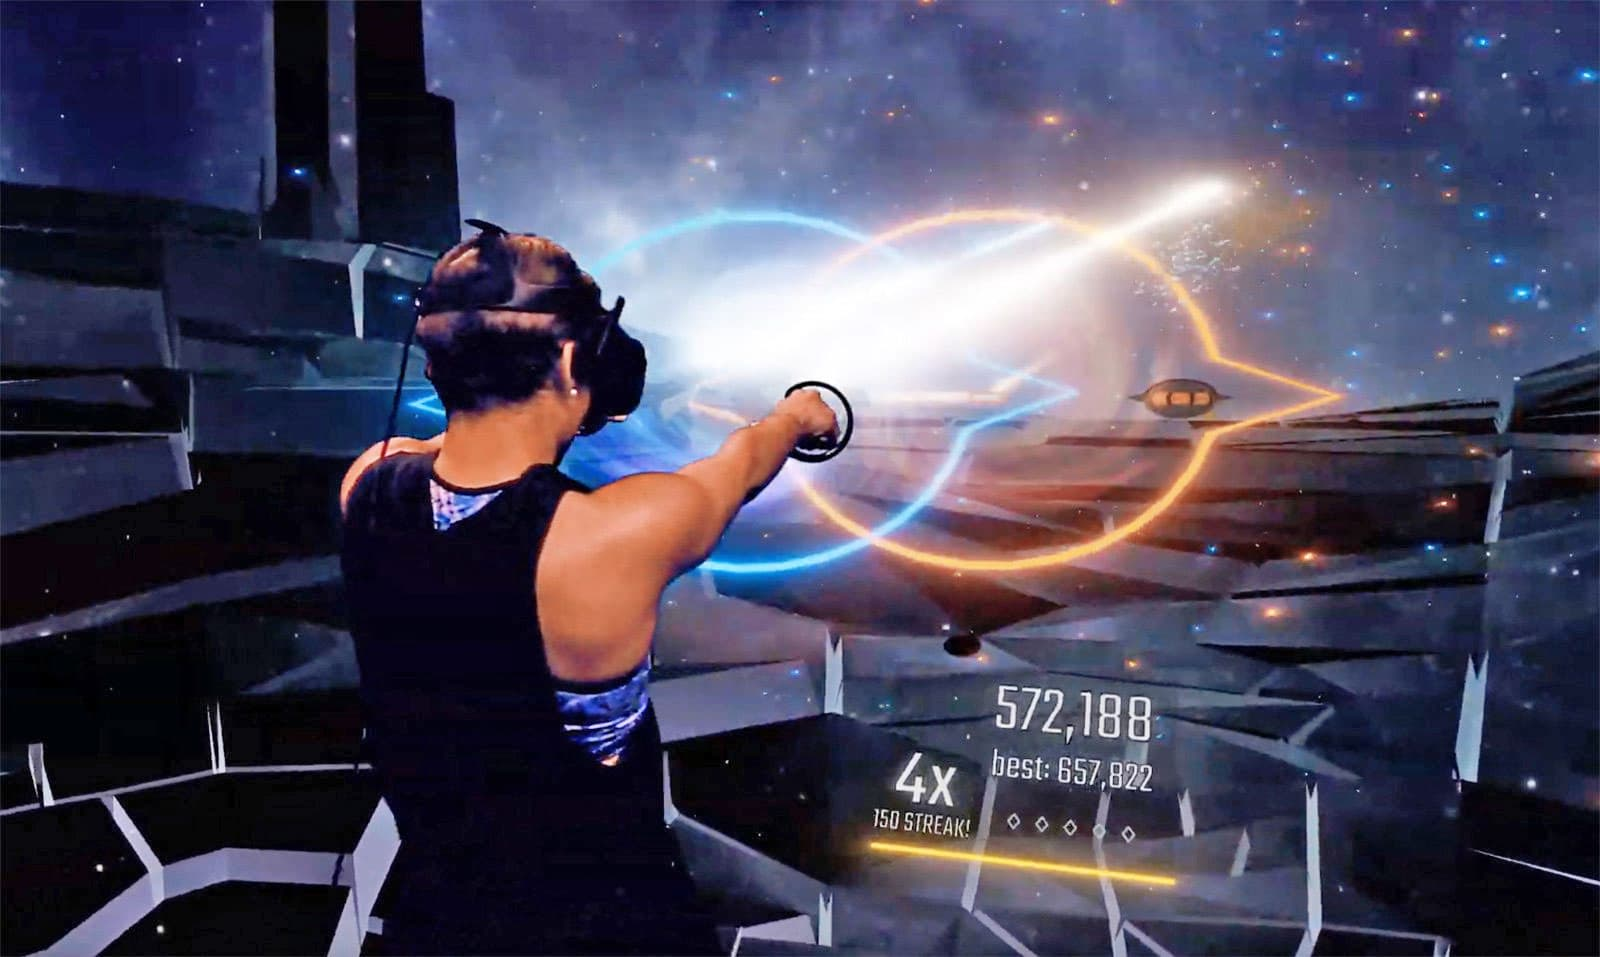 Harmonix's answer to 'Beat Saber' is a VR rhythm shooter